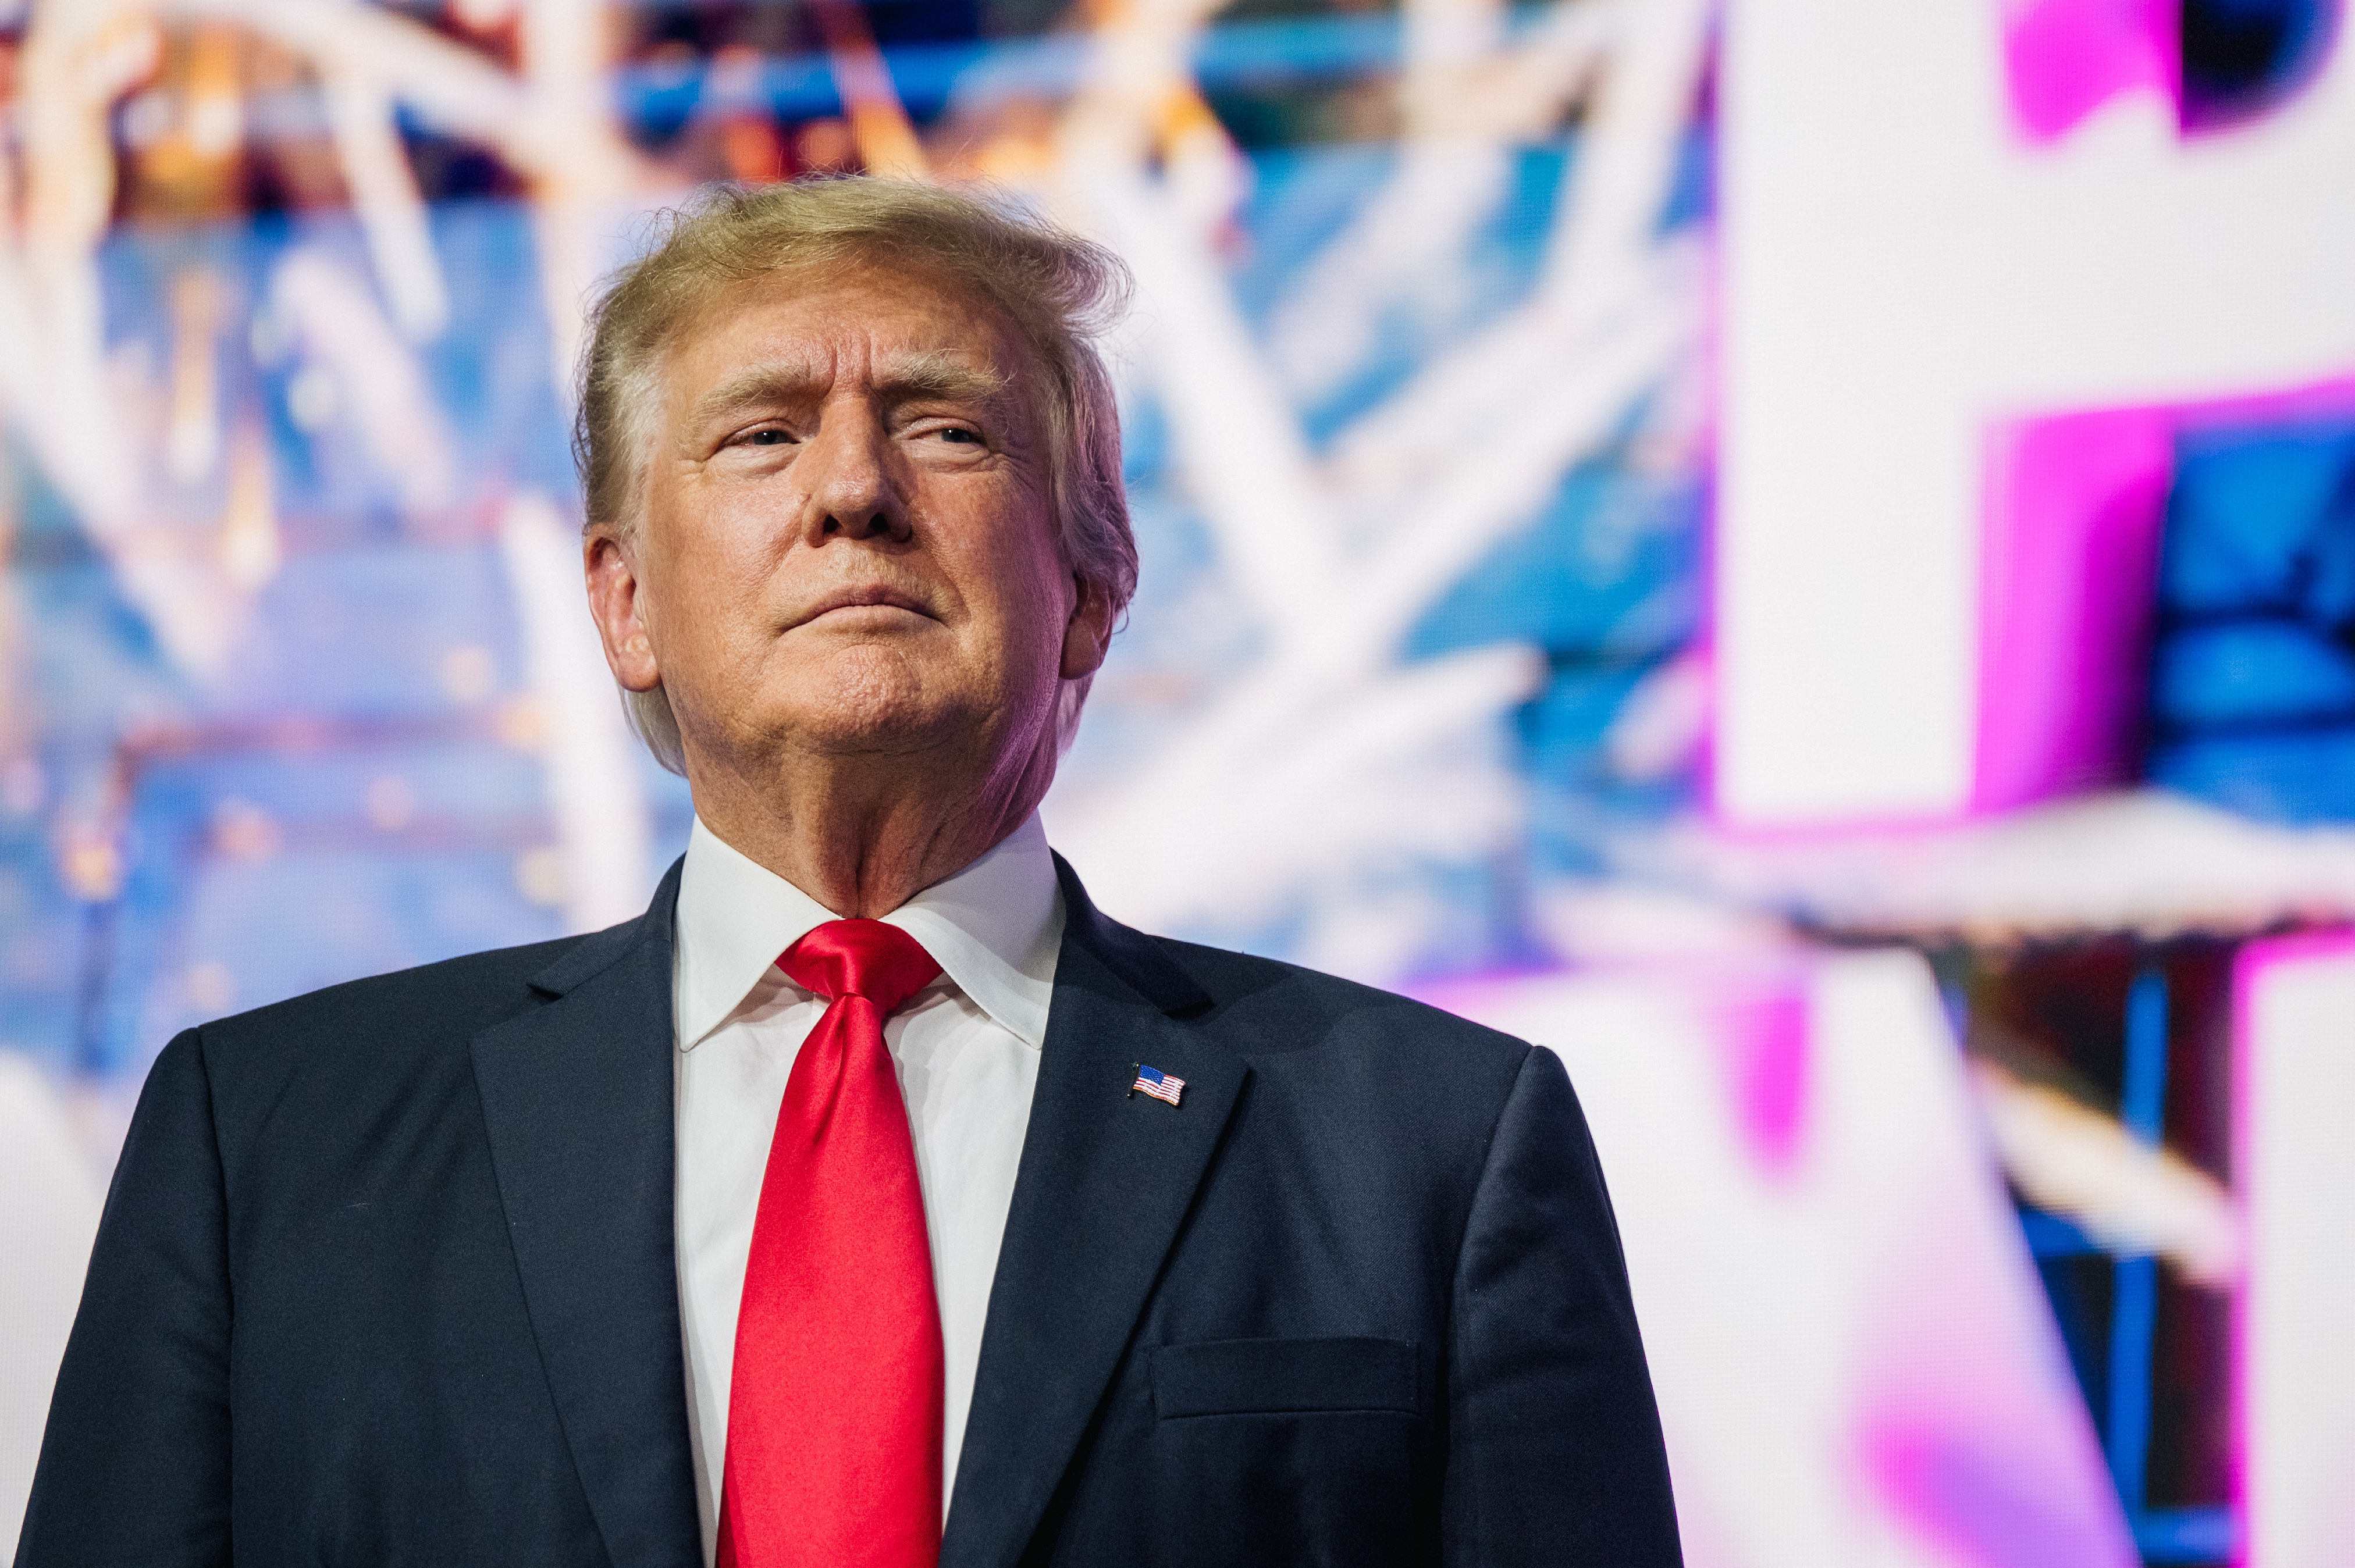 President Donald Trump makes an entrance at the Rally To Protect Our Elections conference on July 24, 2021 in Phoenix, Arizona. (Photo by Brandon Bell/Getty Images)